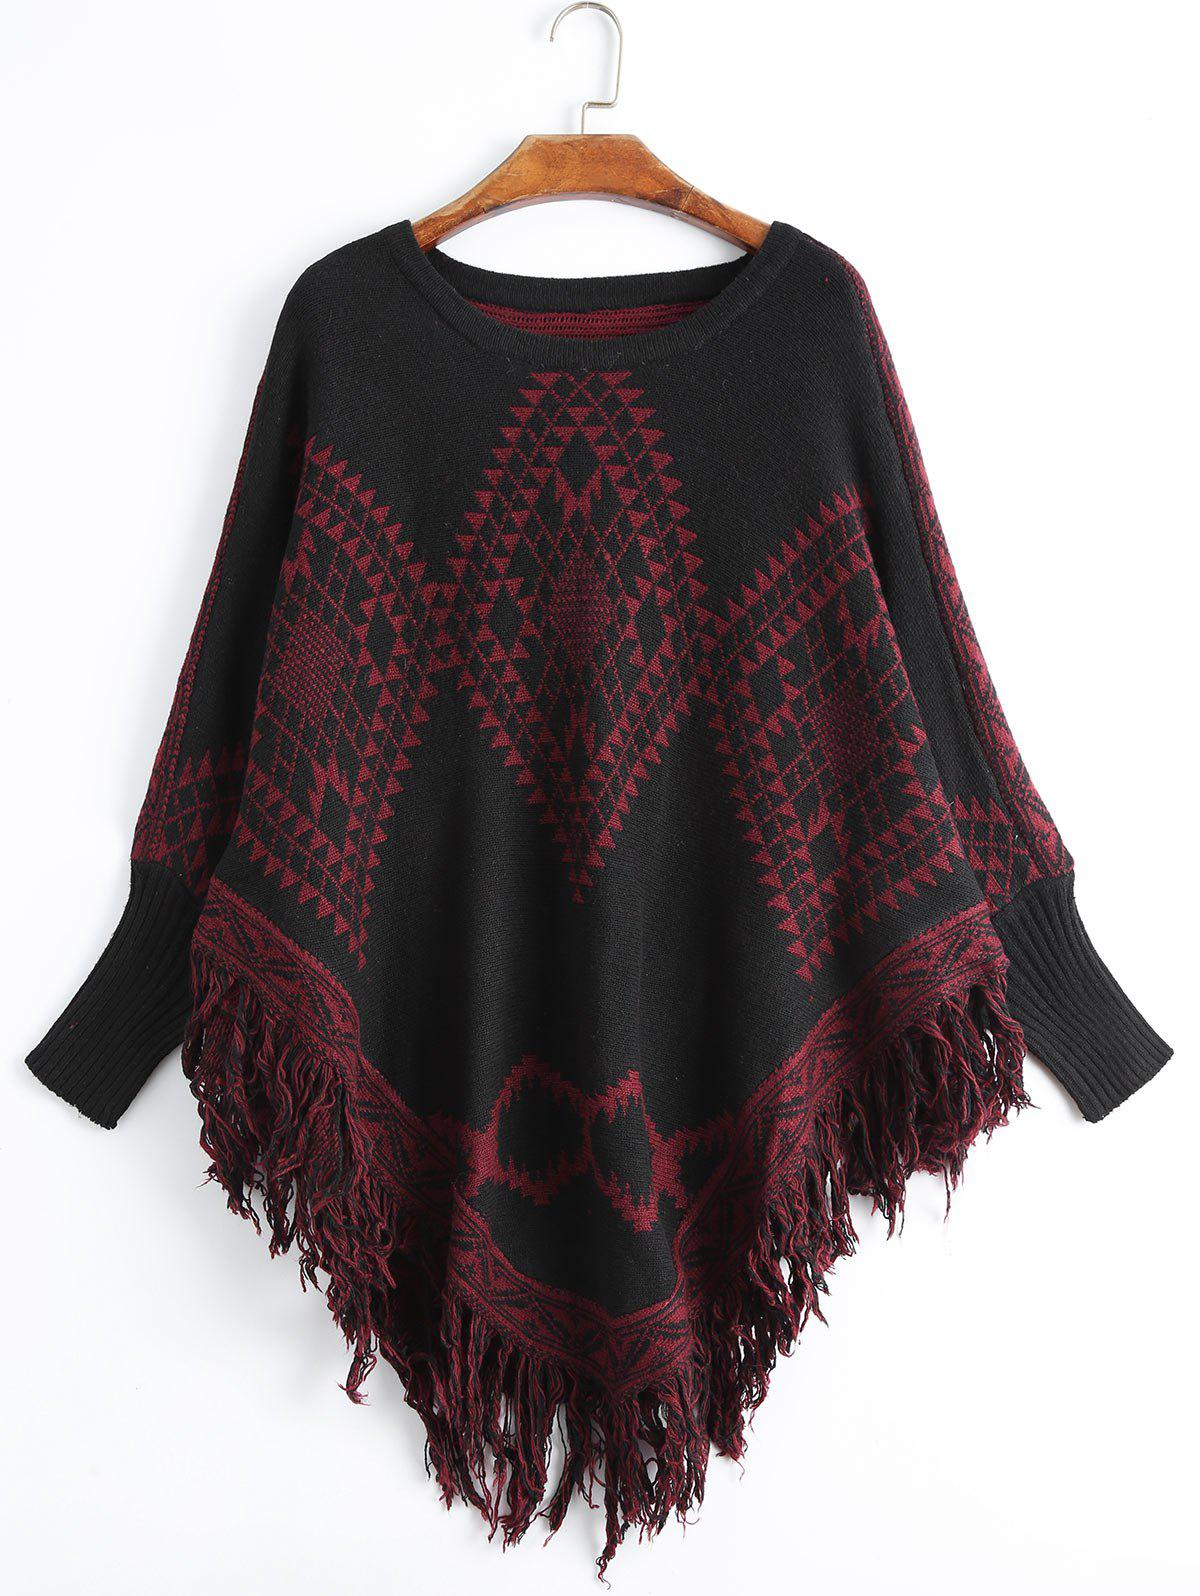 Geometric Fringed Plus Size Poncho SweaterWOMEN<br><br>Size: ONE SIZE; Color: DEEP RED; Type: Pullovers; Material: Polyester,Spandex; Sleeve Length: Full; Collar: Crew Neck; Style: Fashion; Season: Fall; Pattern Type: Geometric; Weight: 0.5500kg; Package Contents: 1 x Sweater;